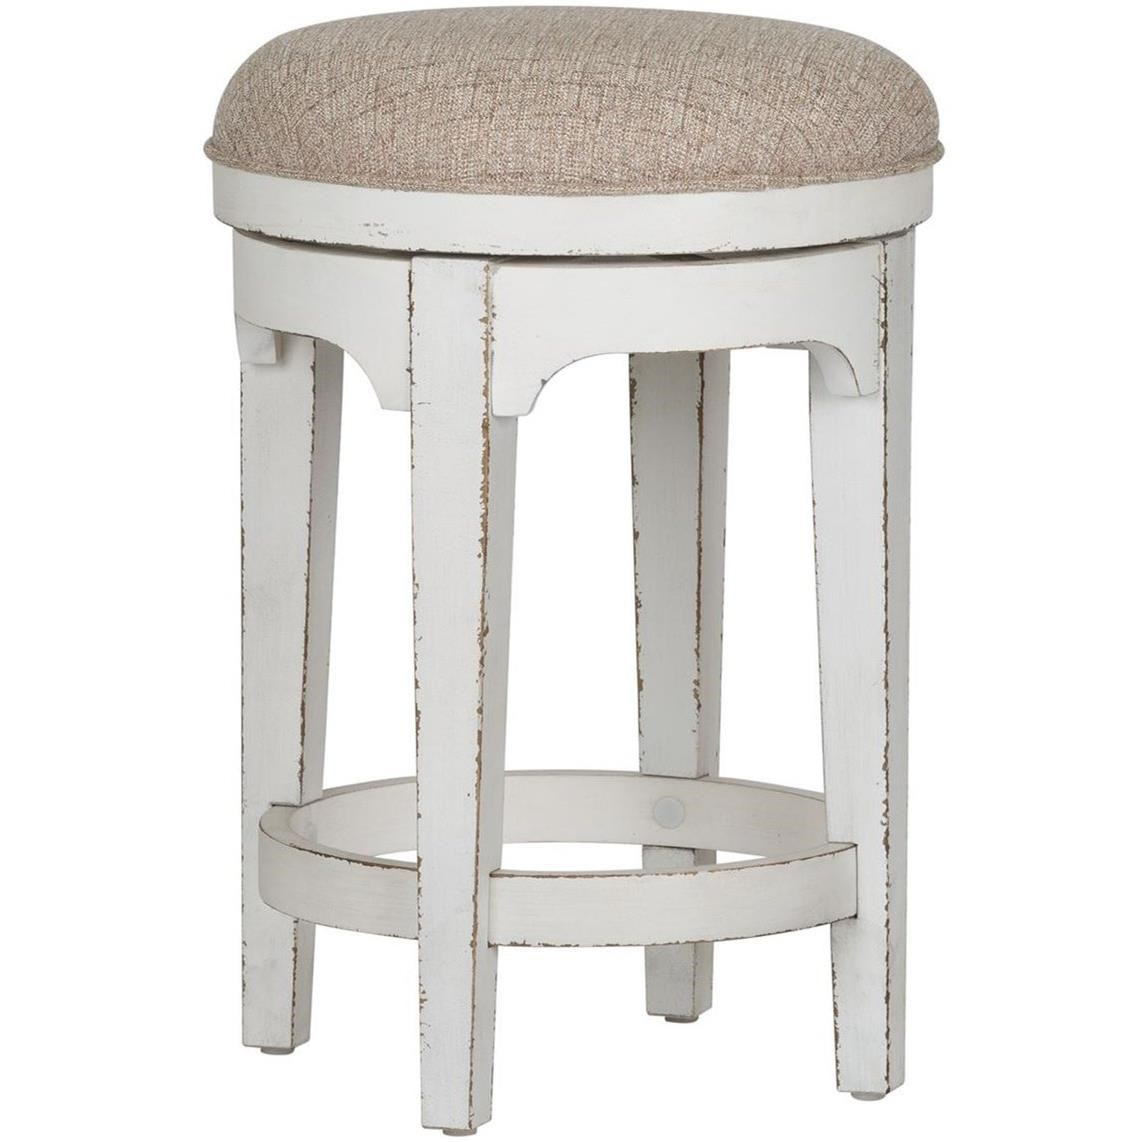 Magnolia Manor Console Swivel Stool by Sarah Randolph Designs at Virginia Furniture Market